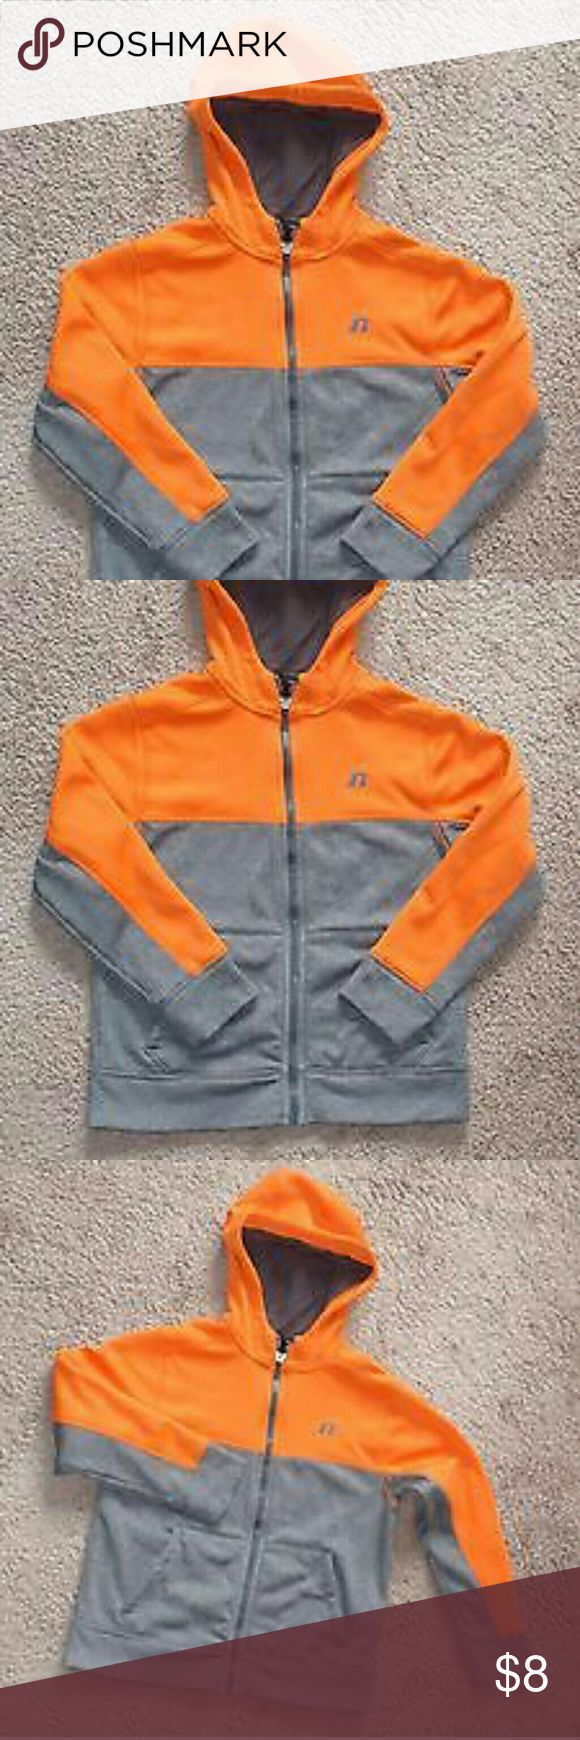 """Boys Russell Athletic Hoody Orange Gray Fleece Zip Used condition From the original owner. Shows minimal wear from normal use.?   Size tag was removed but it was size M, will fit 8 to 10 years old boys.   Read the measurements carefully to make sure it fits your Child.??   All measurements are taken with the jacket laying flat.  From pit to pit is 18"""" inches  From back of neck to bottom?hem?20 1/2"""" inches  Sleeves 18 1/2"""" inches Jackets & Coats"""